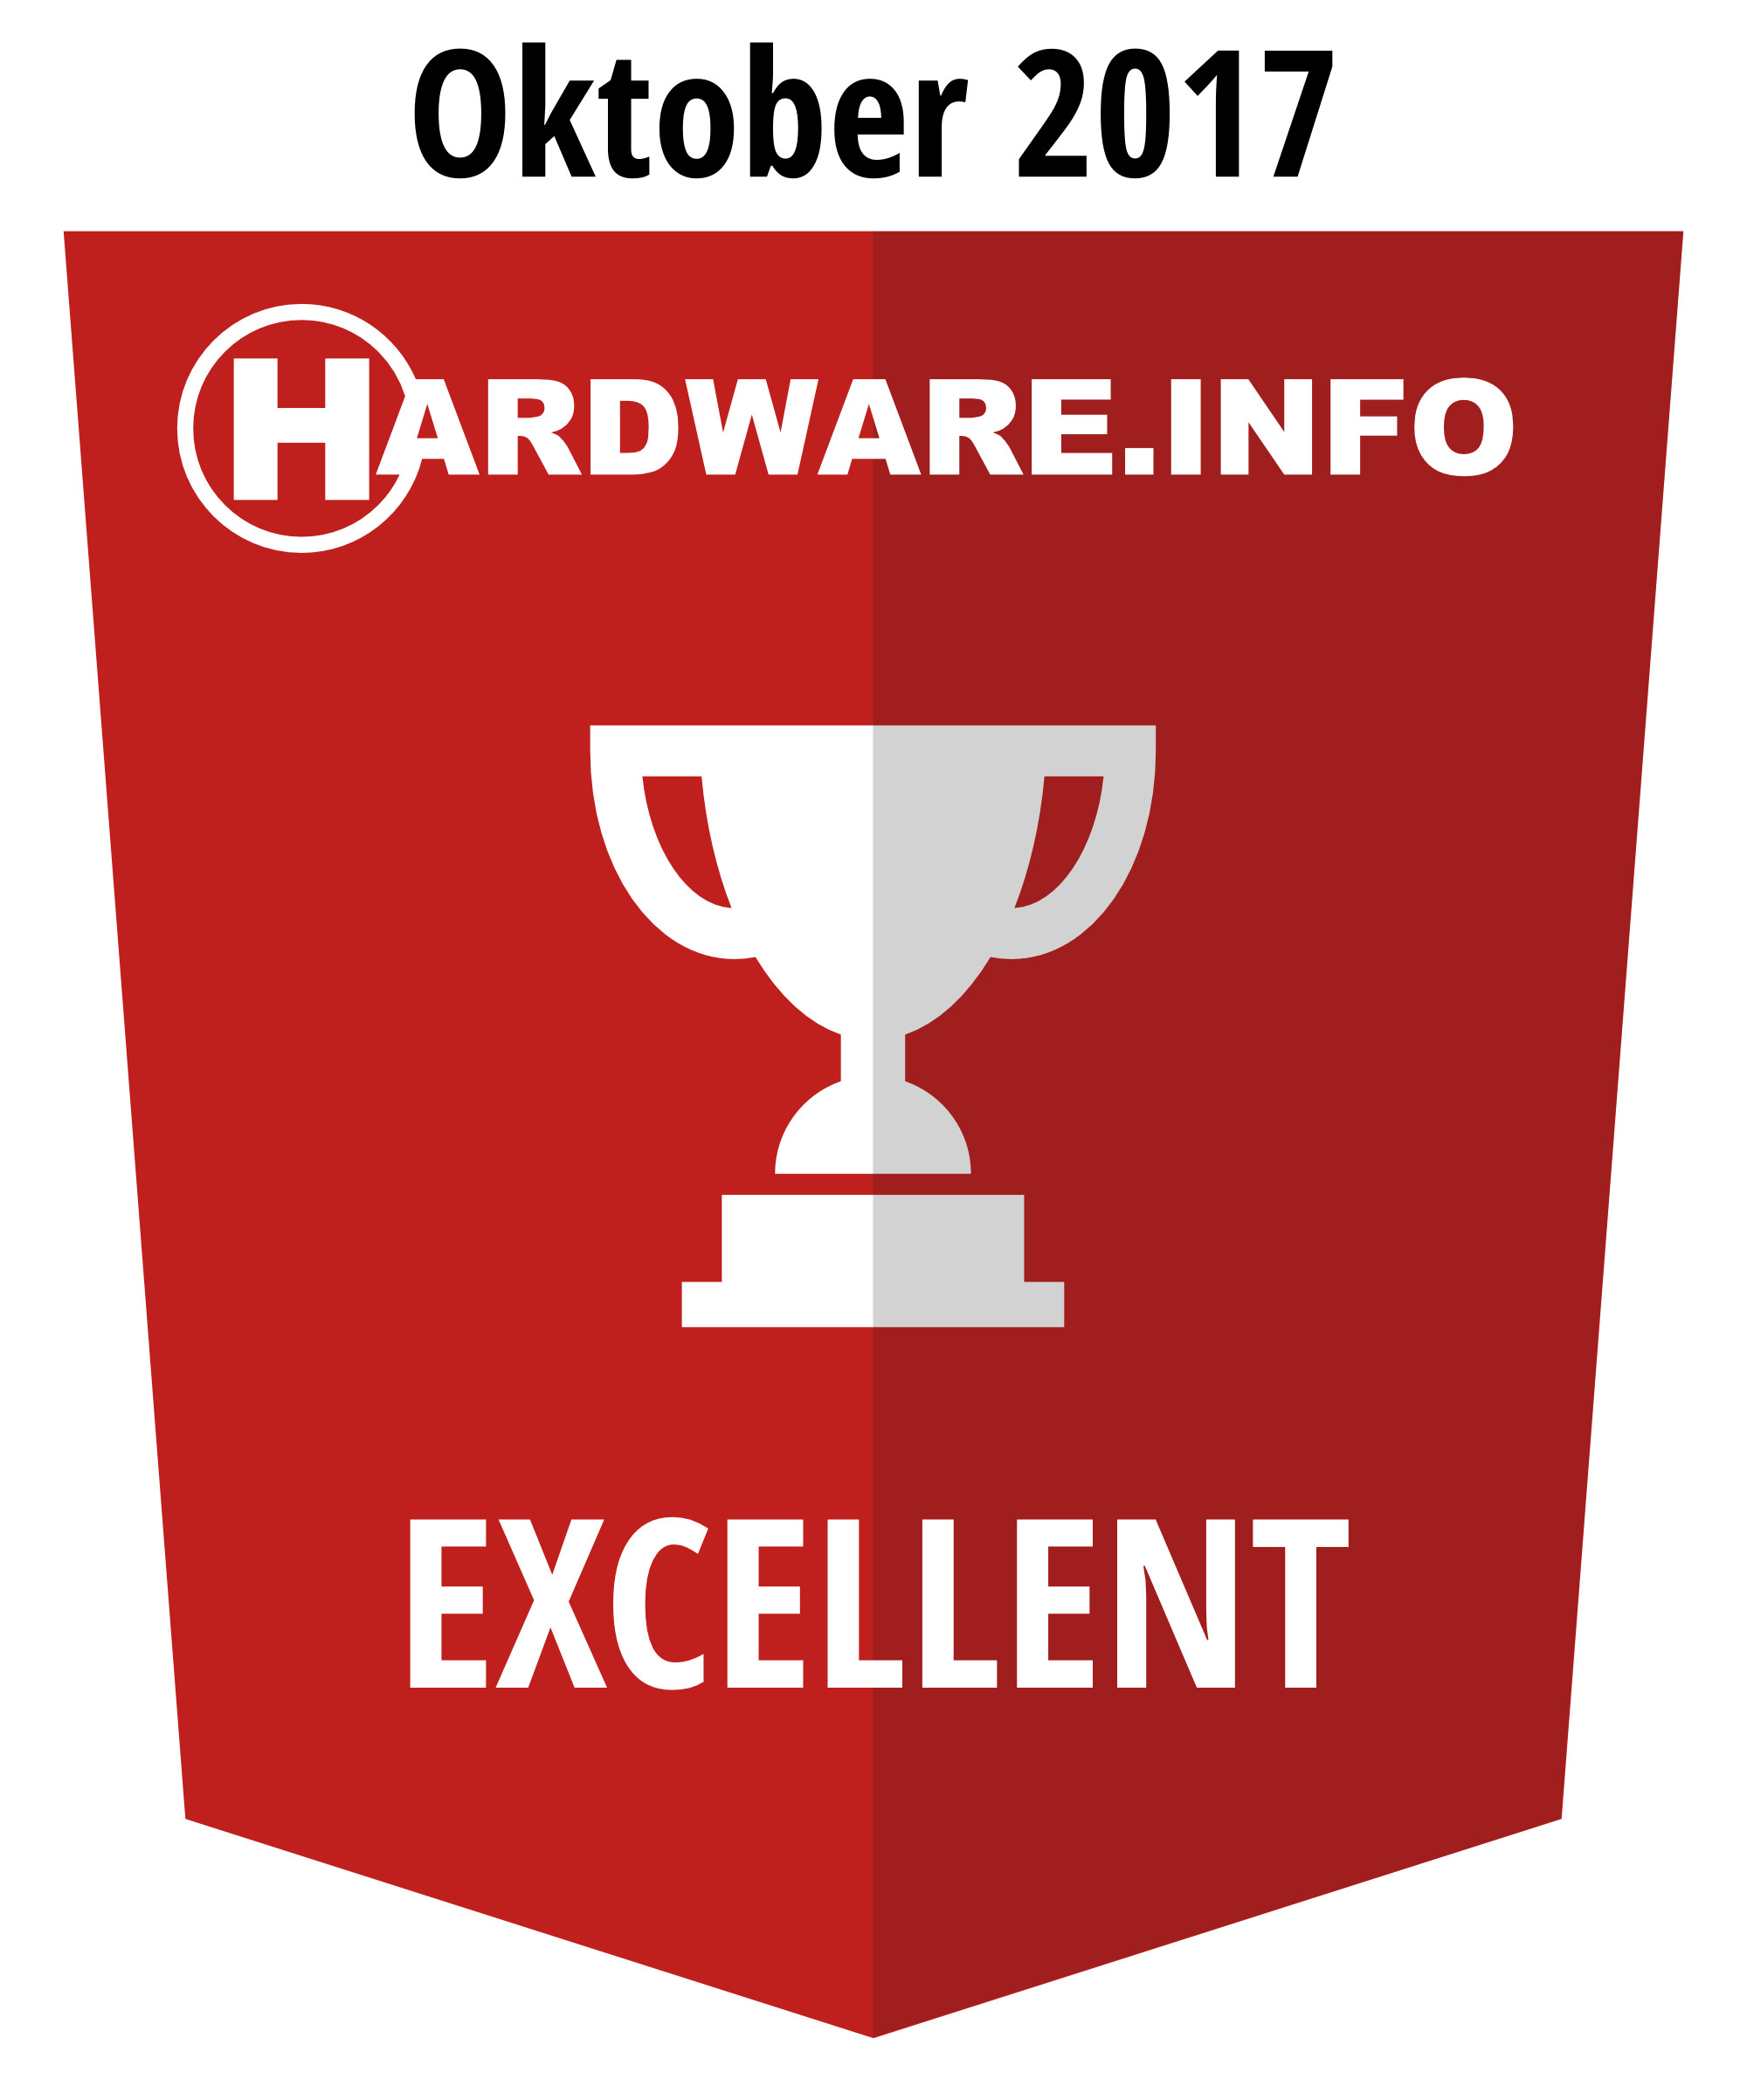 Hardware.info Excellent award 10-2017